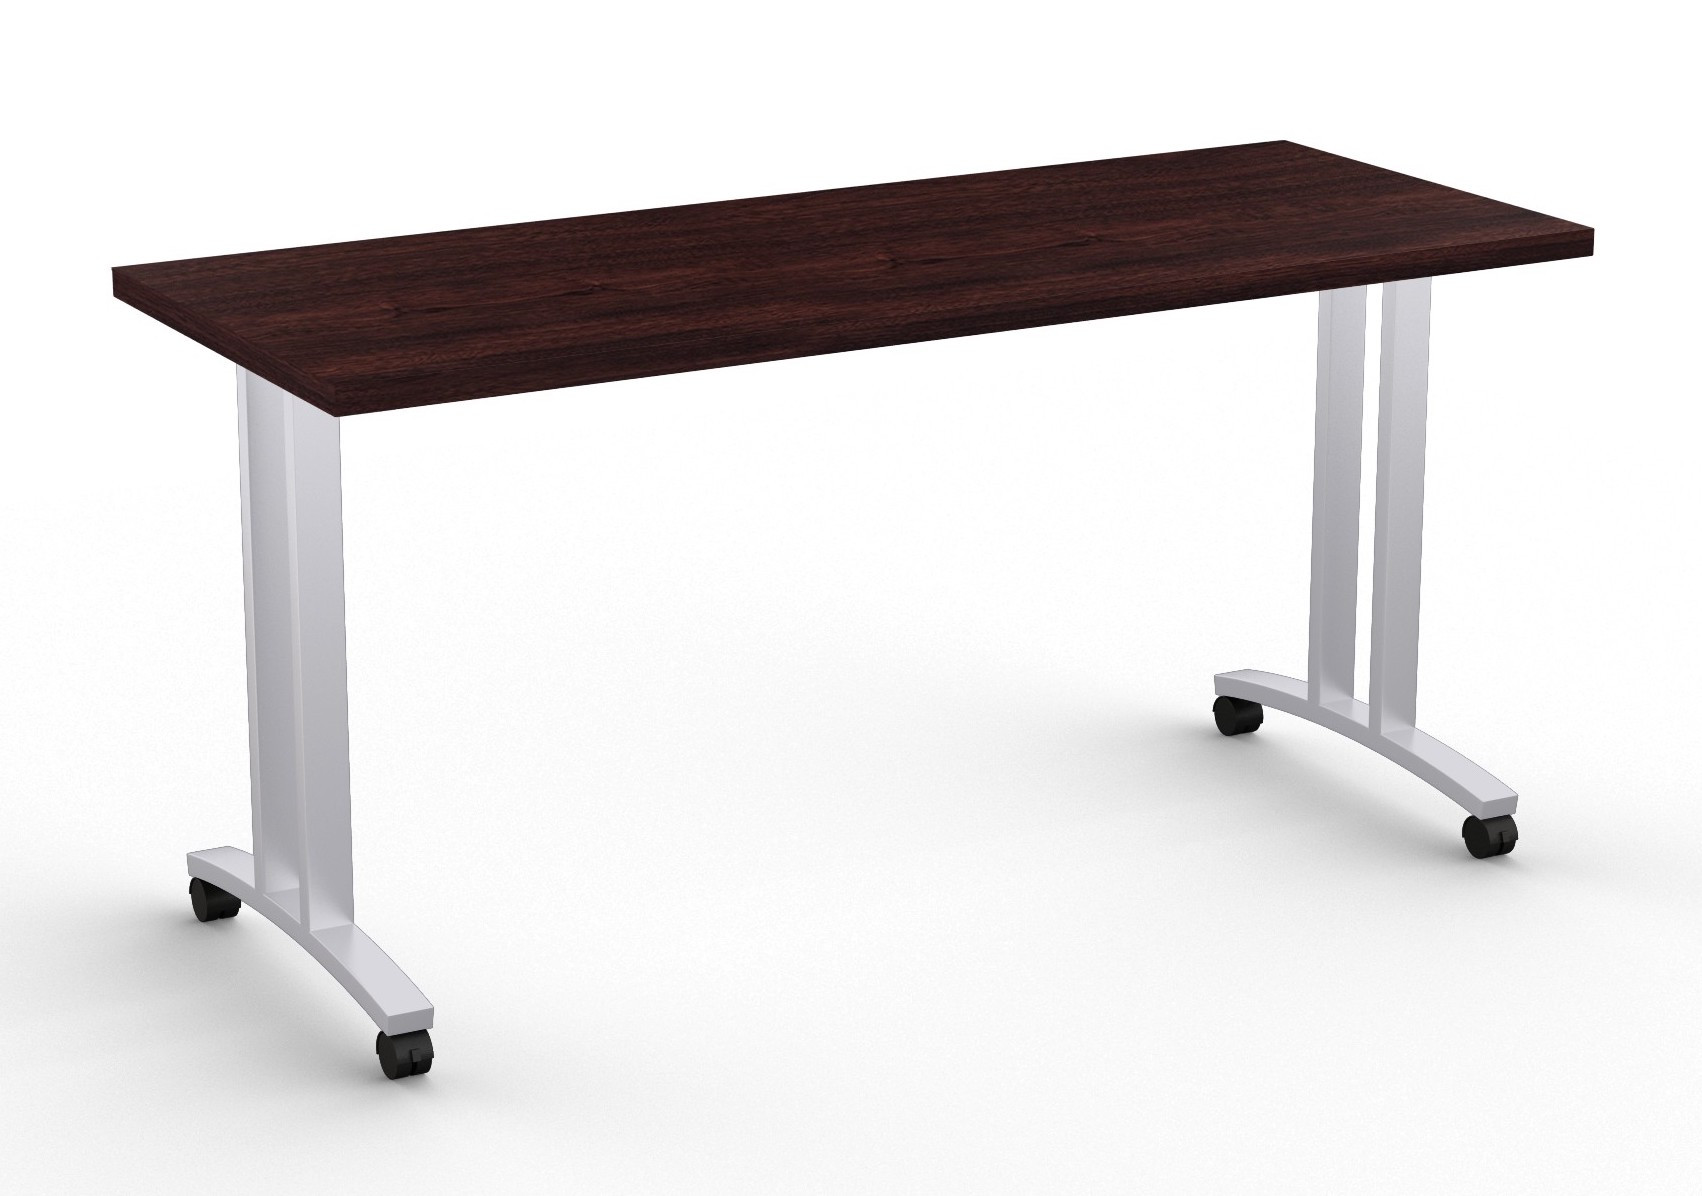 special-t structure t leg training table in espresso